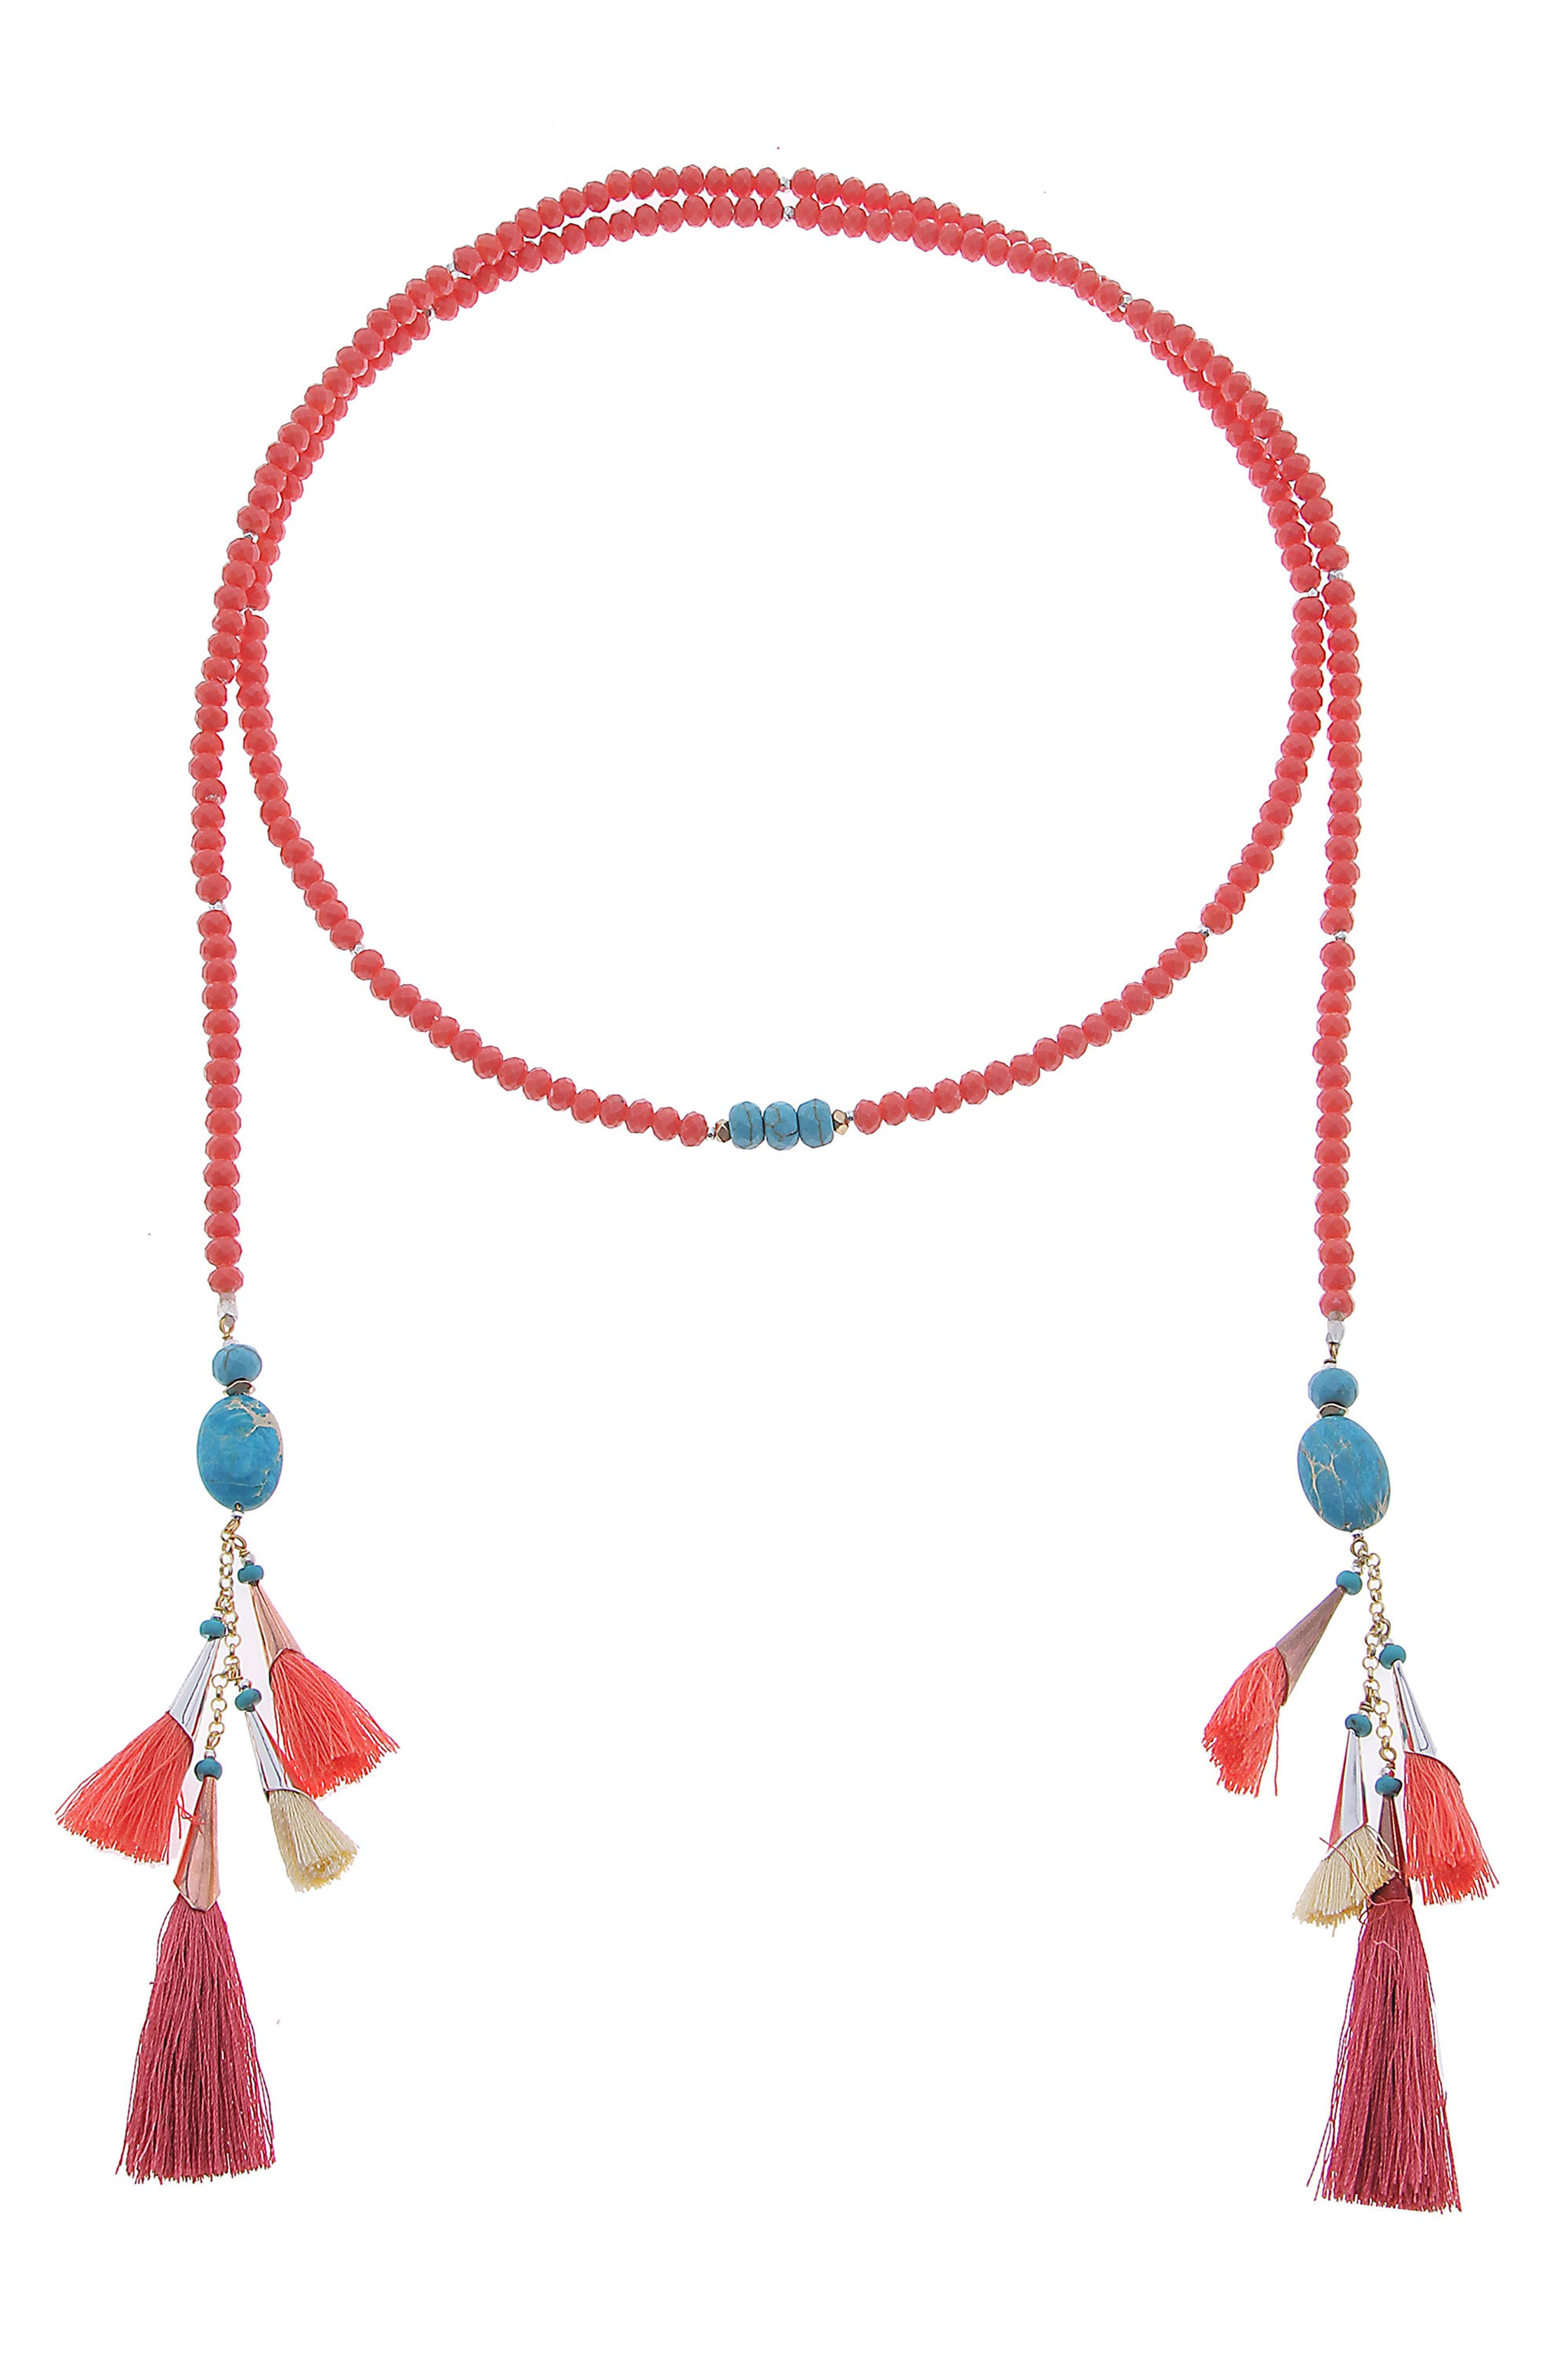 Lariat with Tassels,                             Main thumbnail 1, color,                             ORANGE